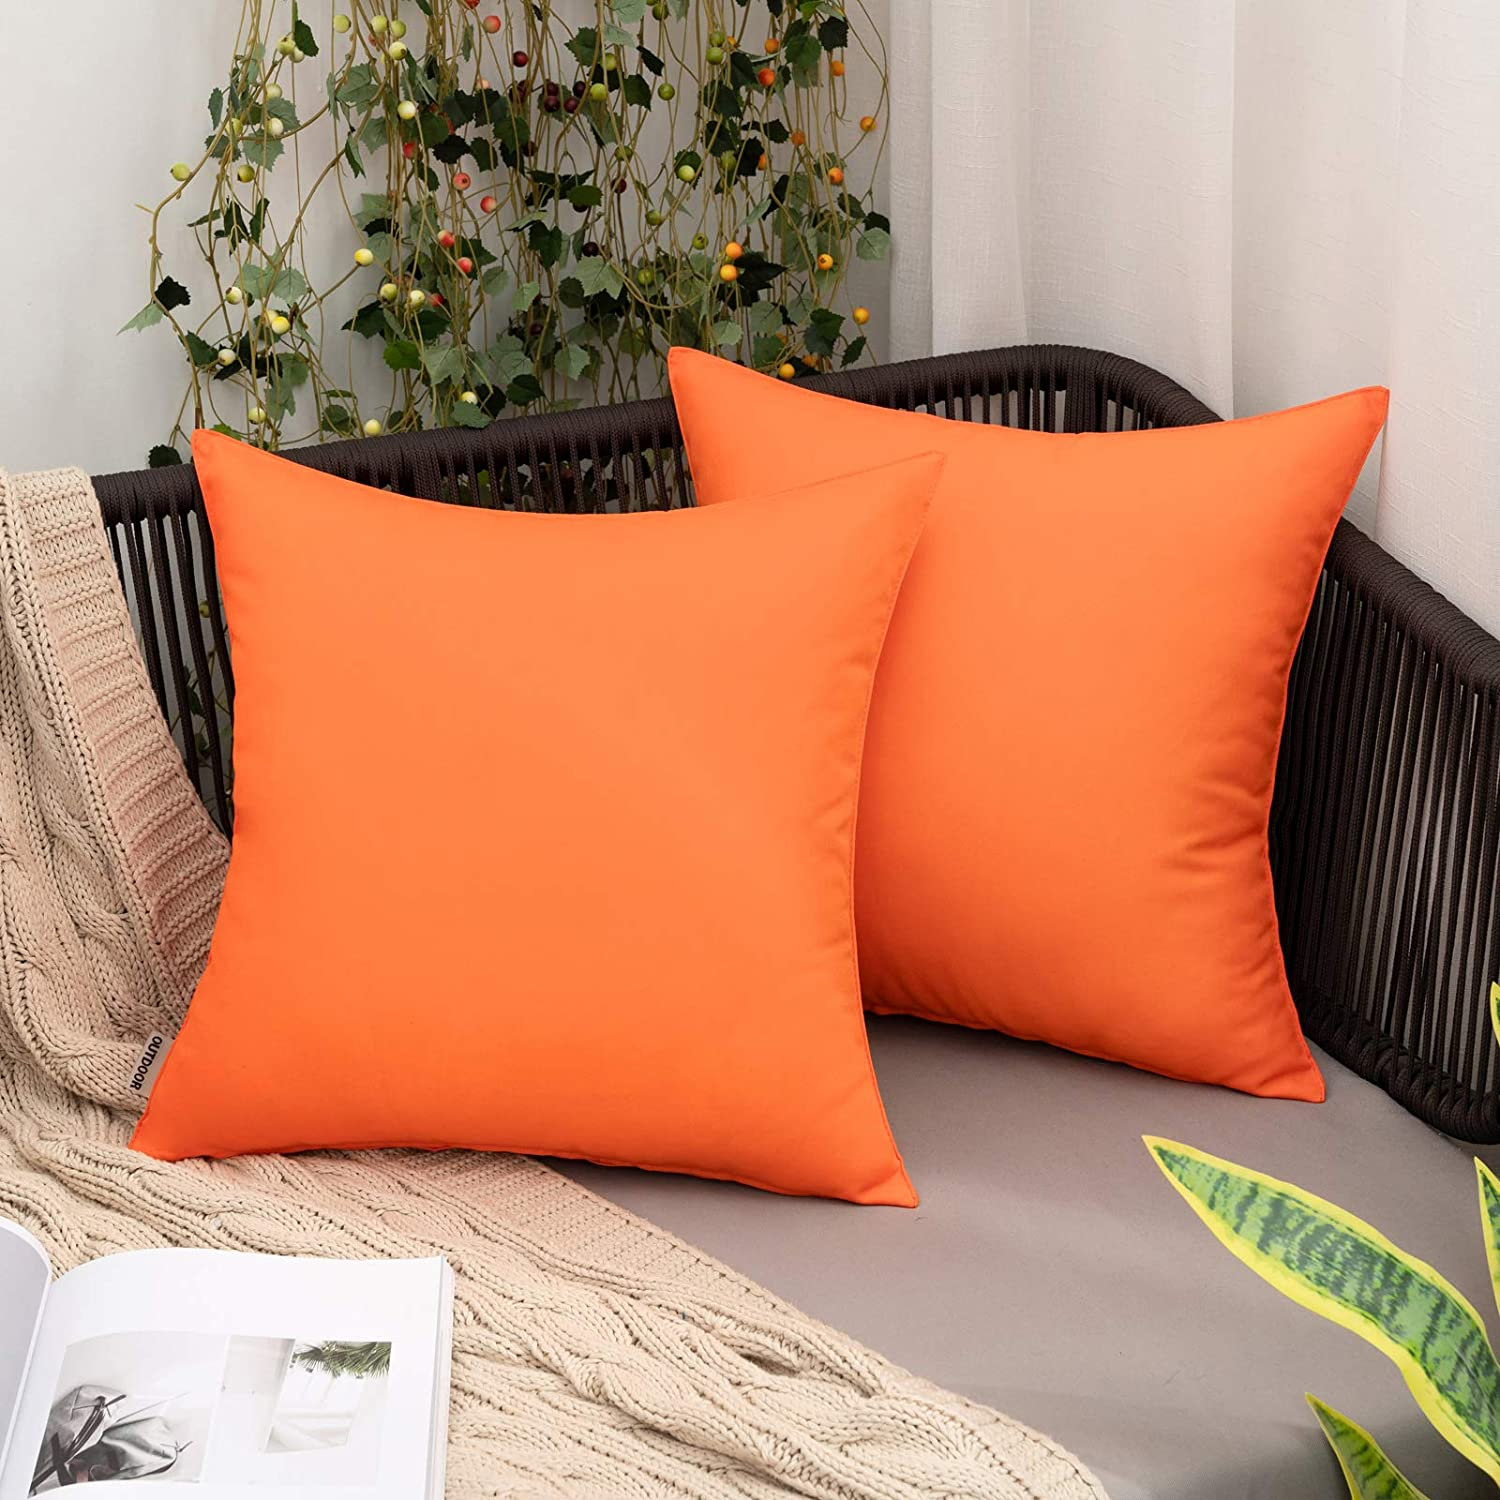 MIULEE Pack of 2 Fees free!! Decorative Mesa Mall Covers Pillow Waterproof Fal Outdoor